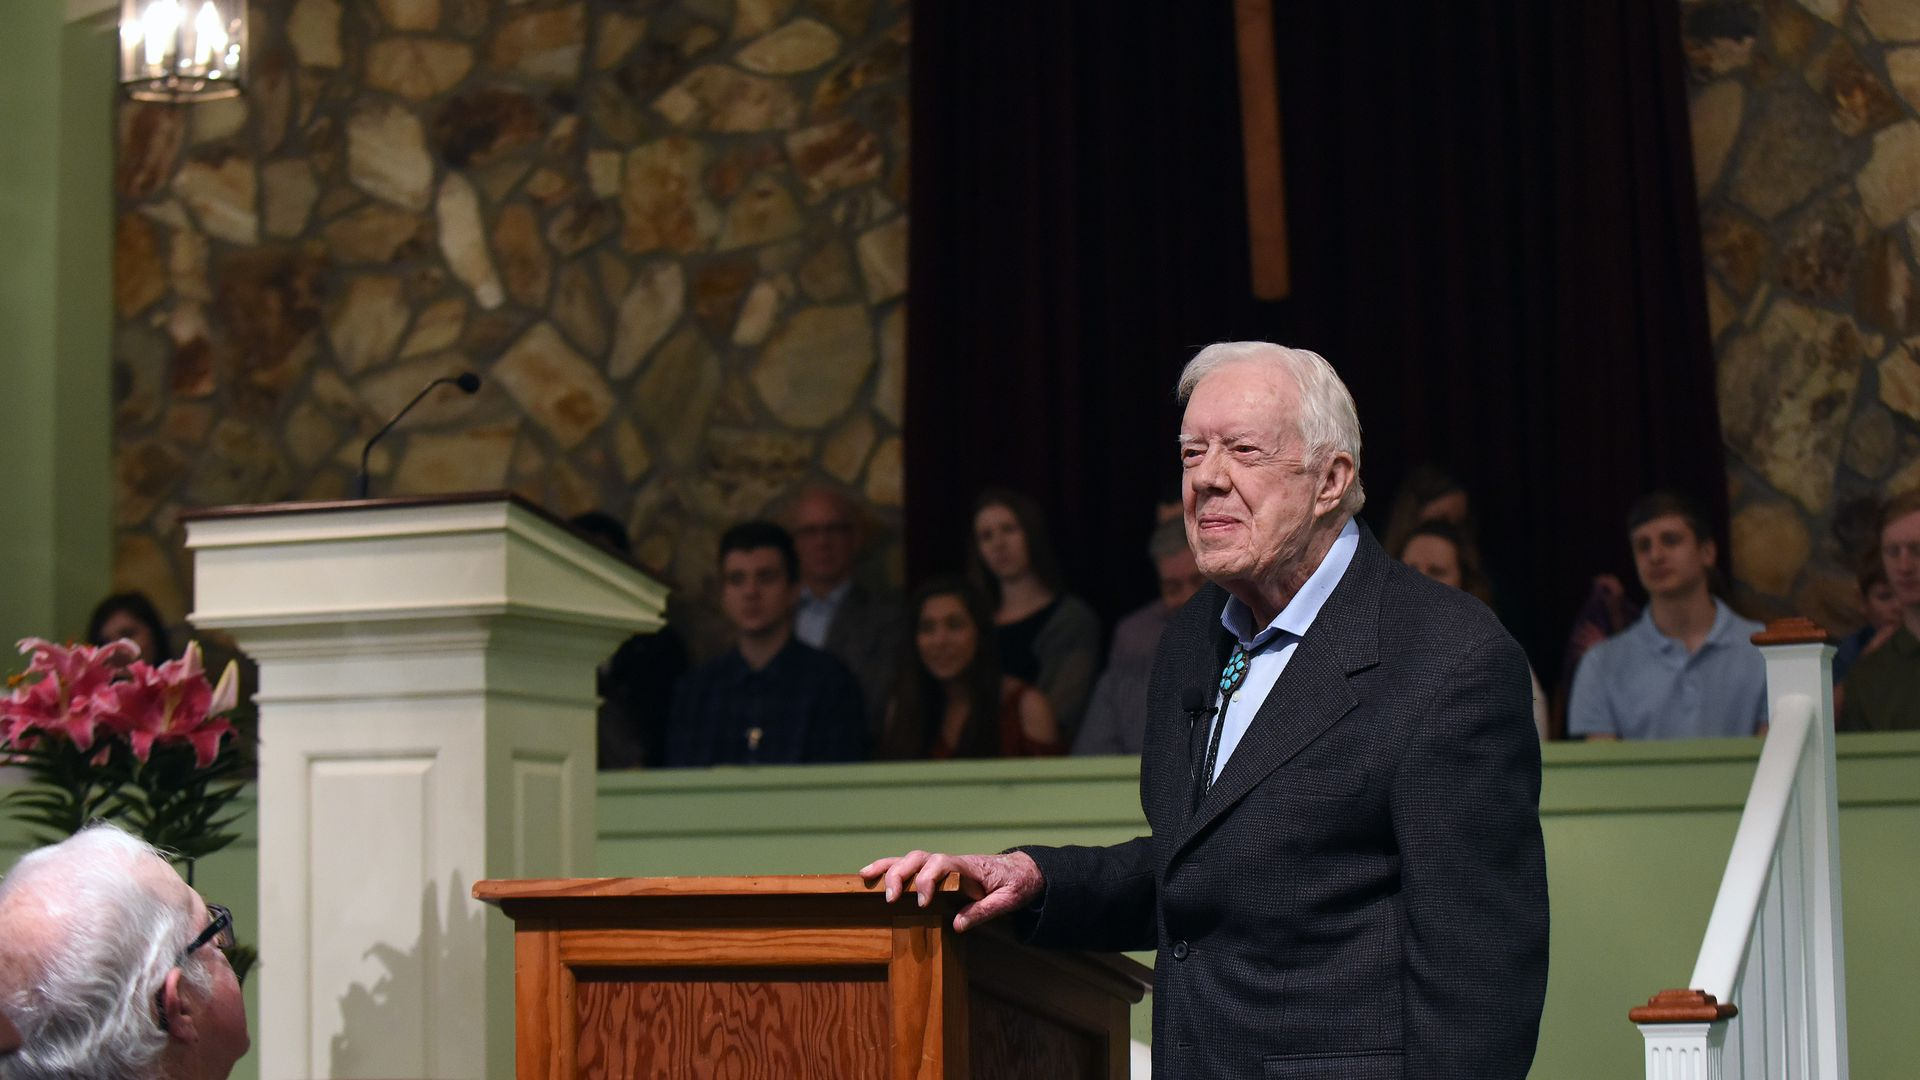 Former U.S. President Jimmy Carter speaks to the congregation at Maranatha Baptist Church before teaching Sunday school in his hometown of Plains, Georgia.